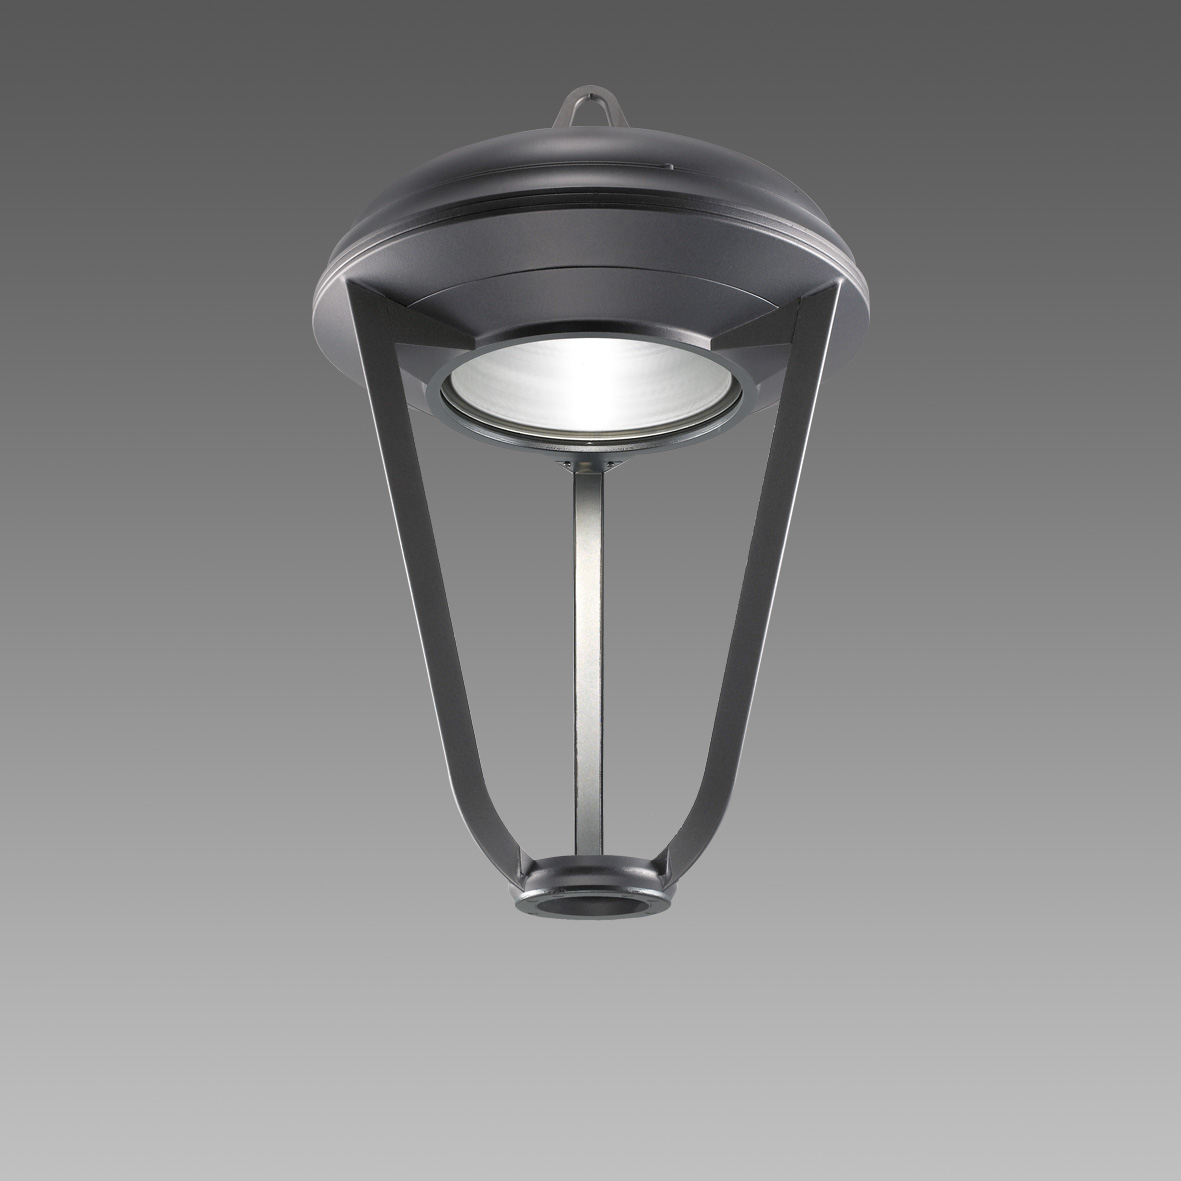 3215 Lucerna R5 suspension lamp with glass